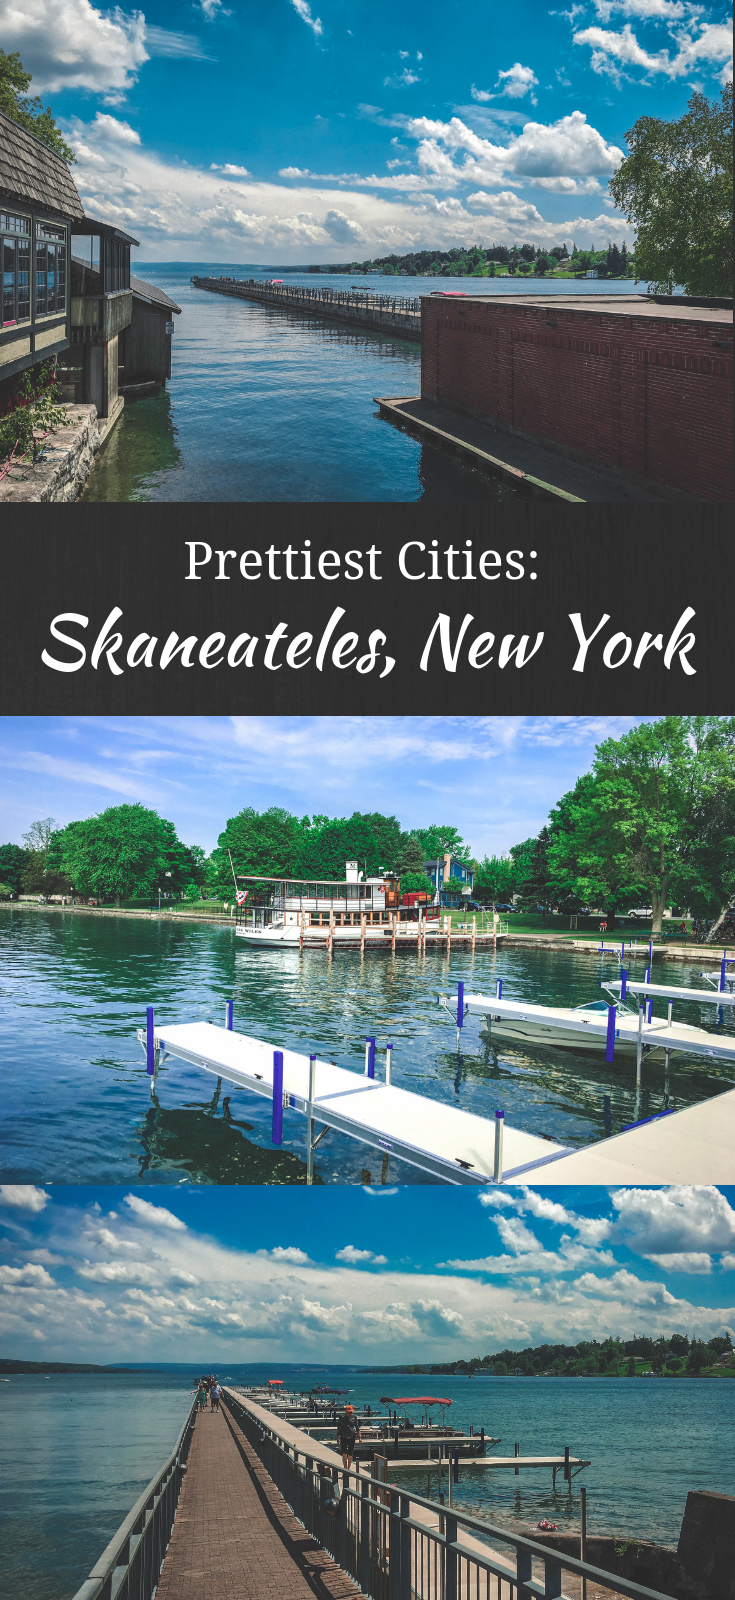 In This Guide To Skaneateles New York I Let You Know All The Things